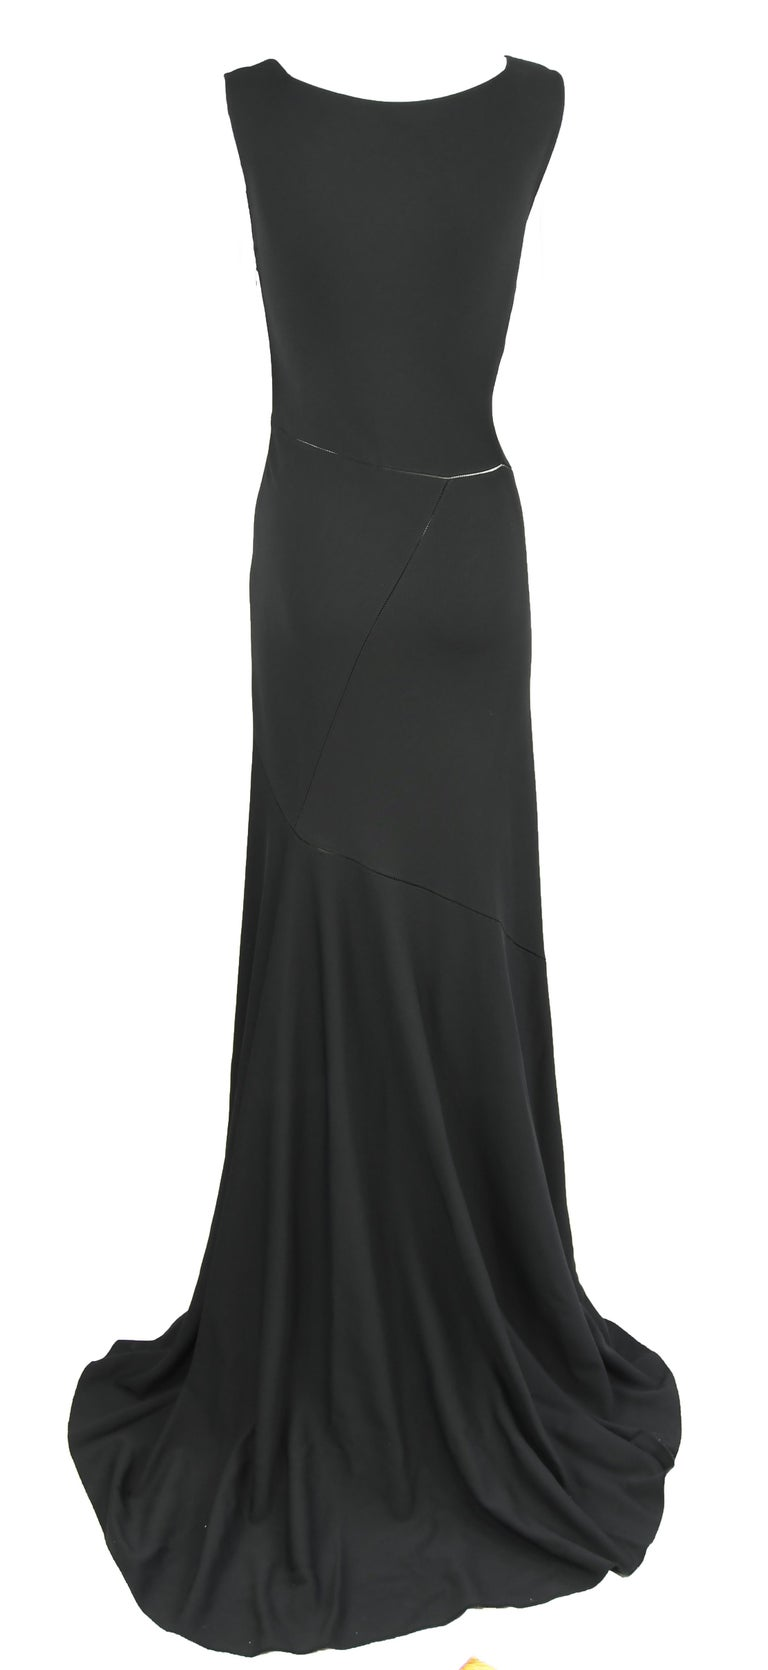 Original Azzedine Alaia jet black sleeveless gown, featuring a square neckline and train. Classic, gorgeous and elegant.  Composition is Viscose and Polyester. Marked Size Tag - Medium.